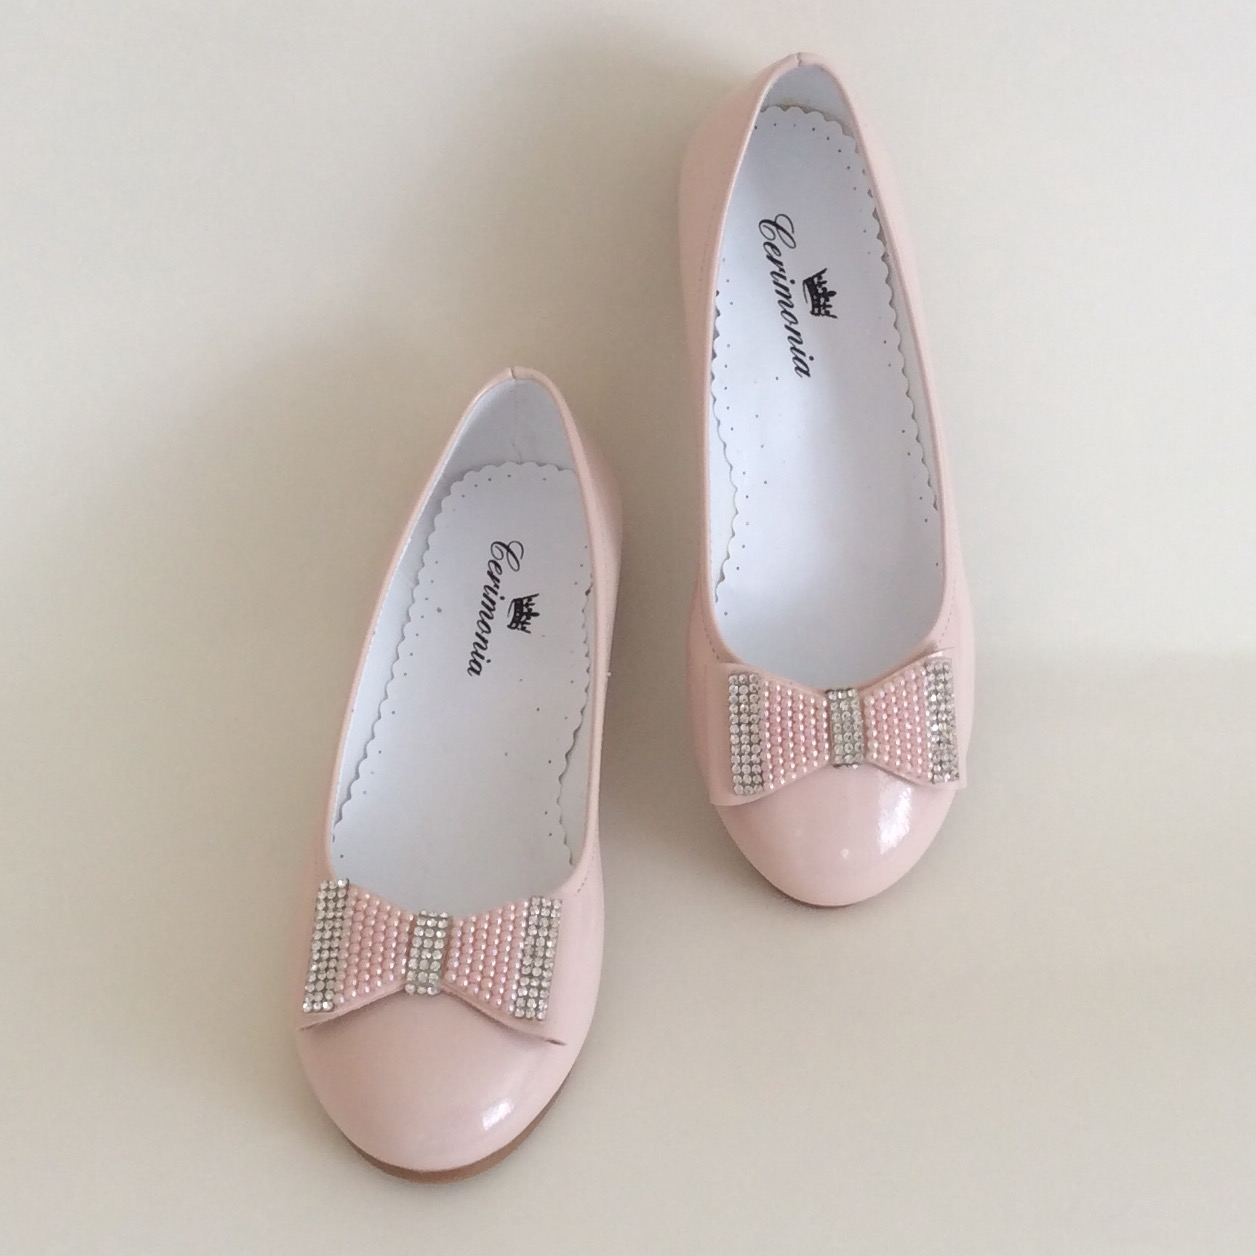 Cerimonia Slip on Pump, Blush